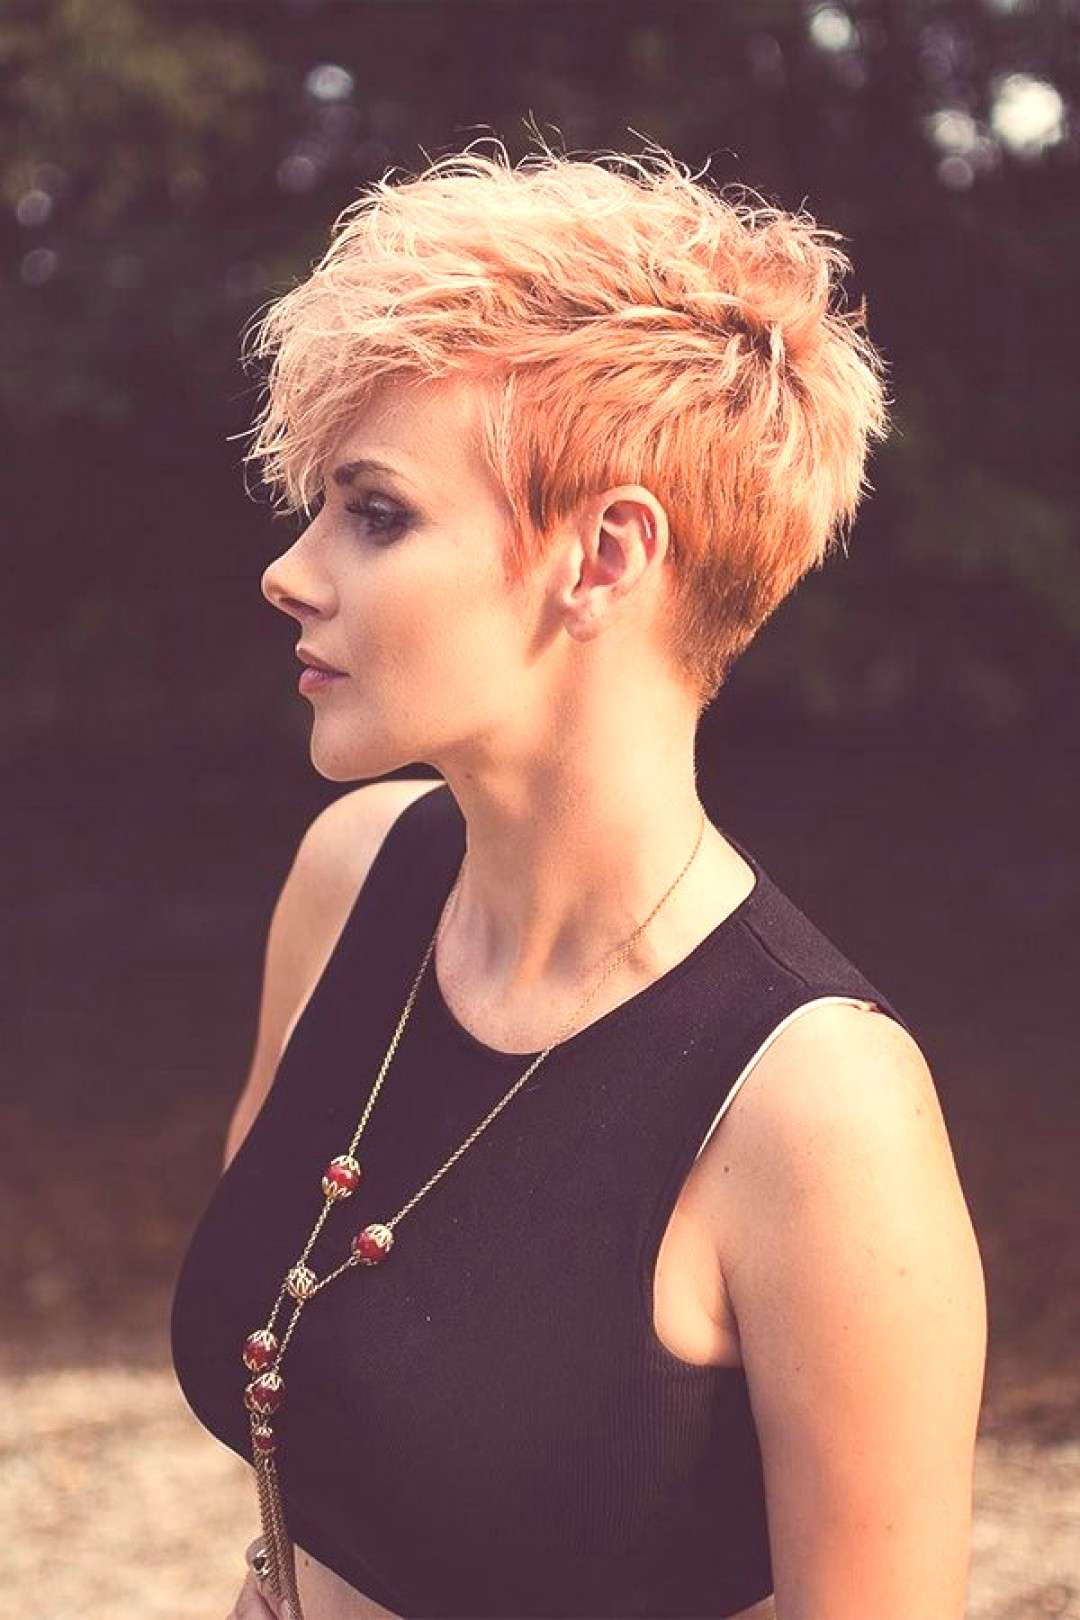 Ways To Get A Pixie Haircut No Matter Your Face Shape Get a Pixie Cut according to your face shape